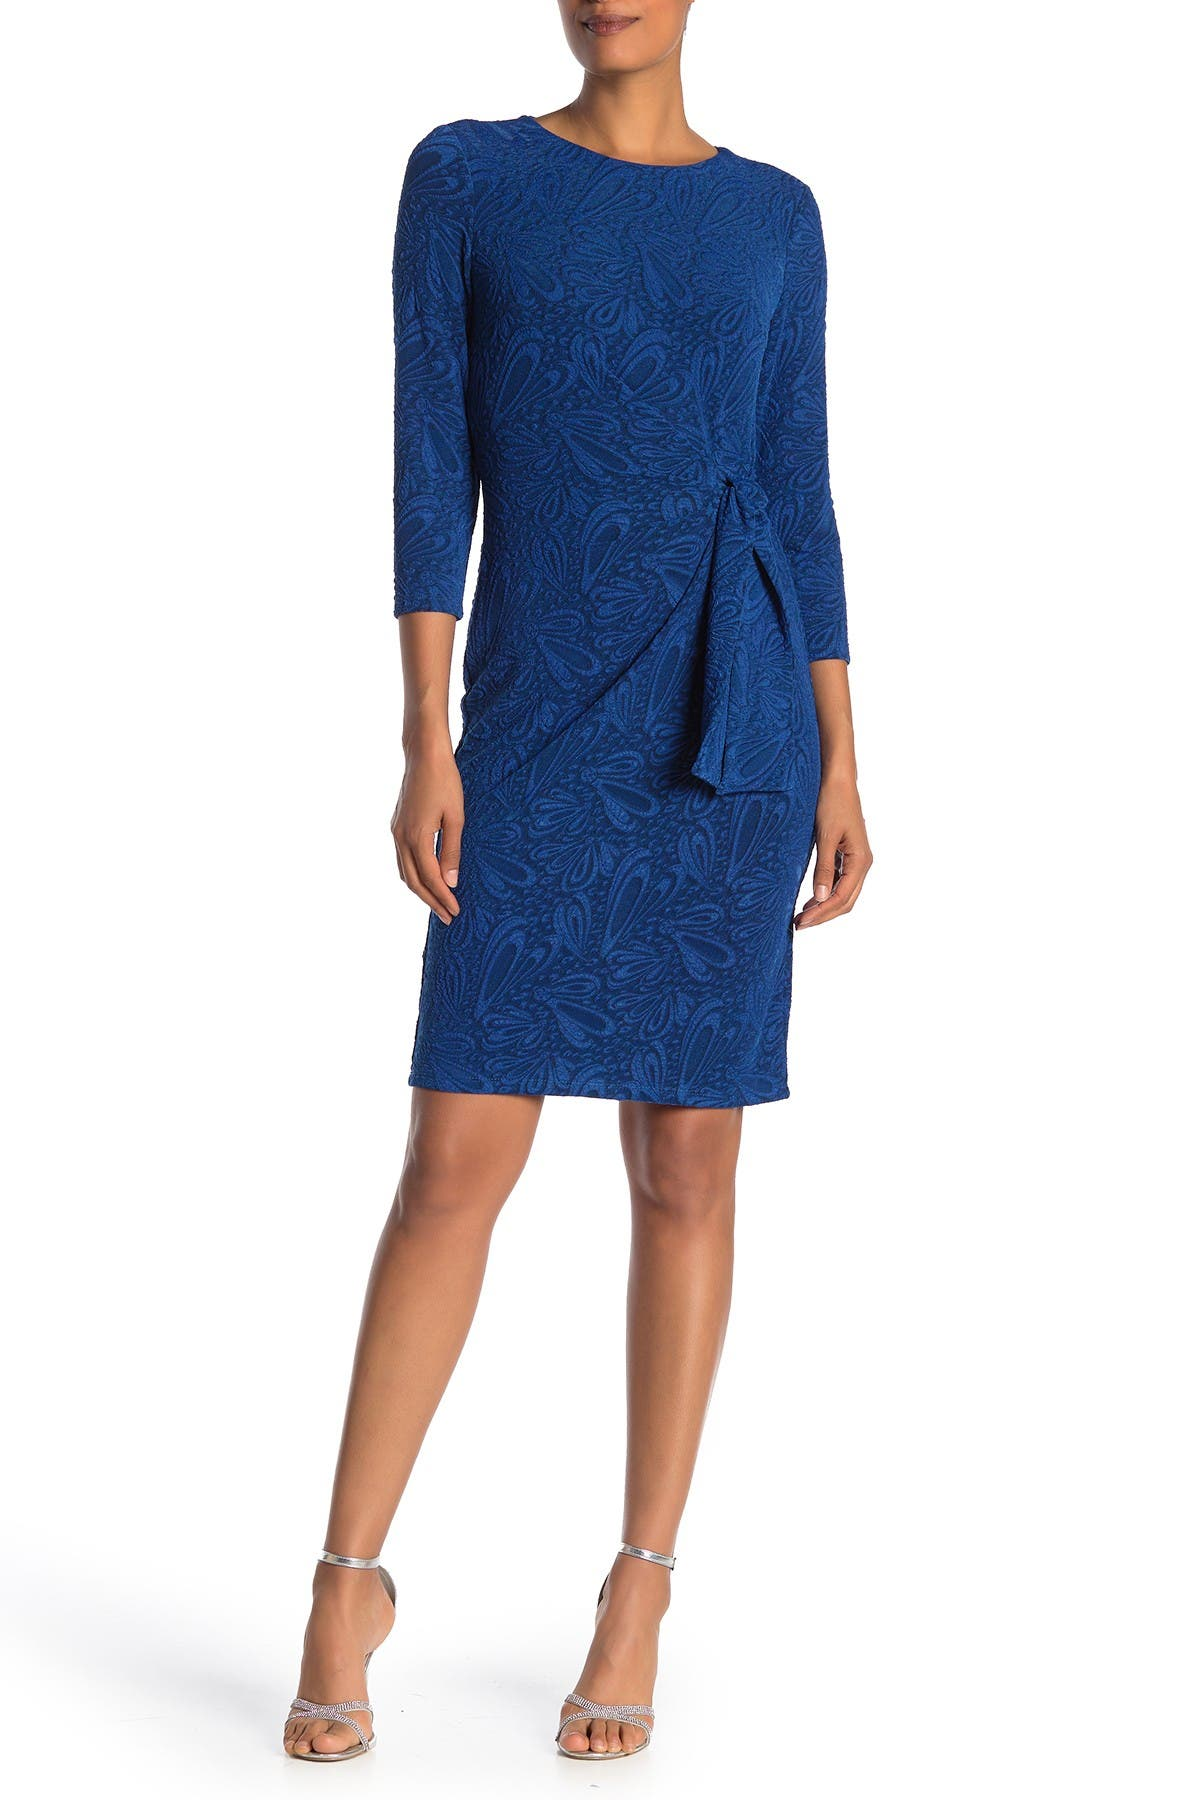 Image of London Times Jacquard Waist Tie Sheath Dress